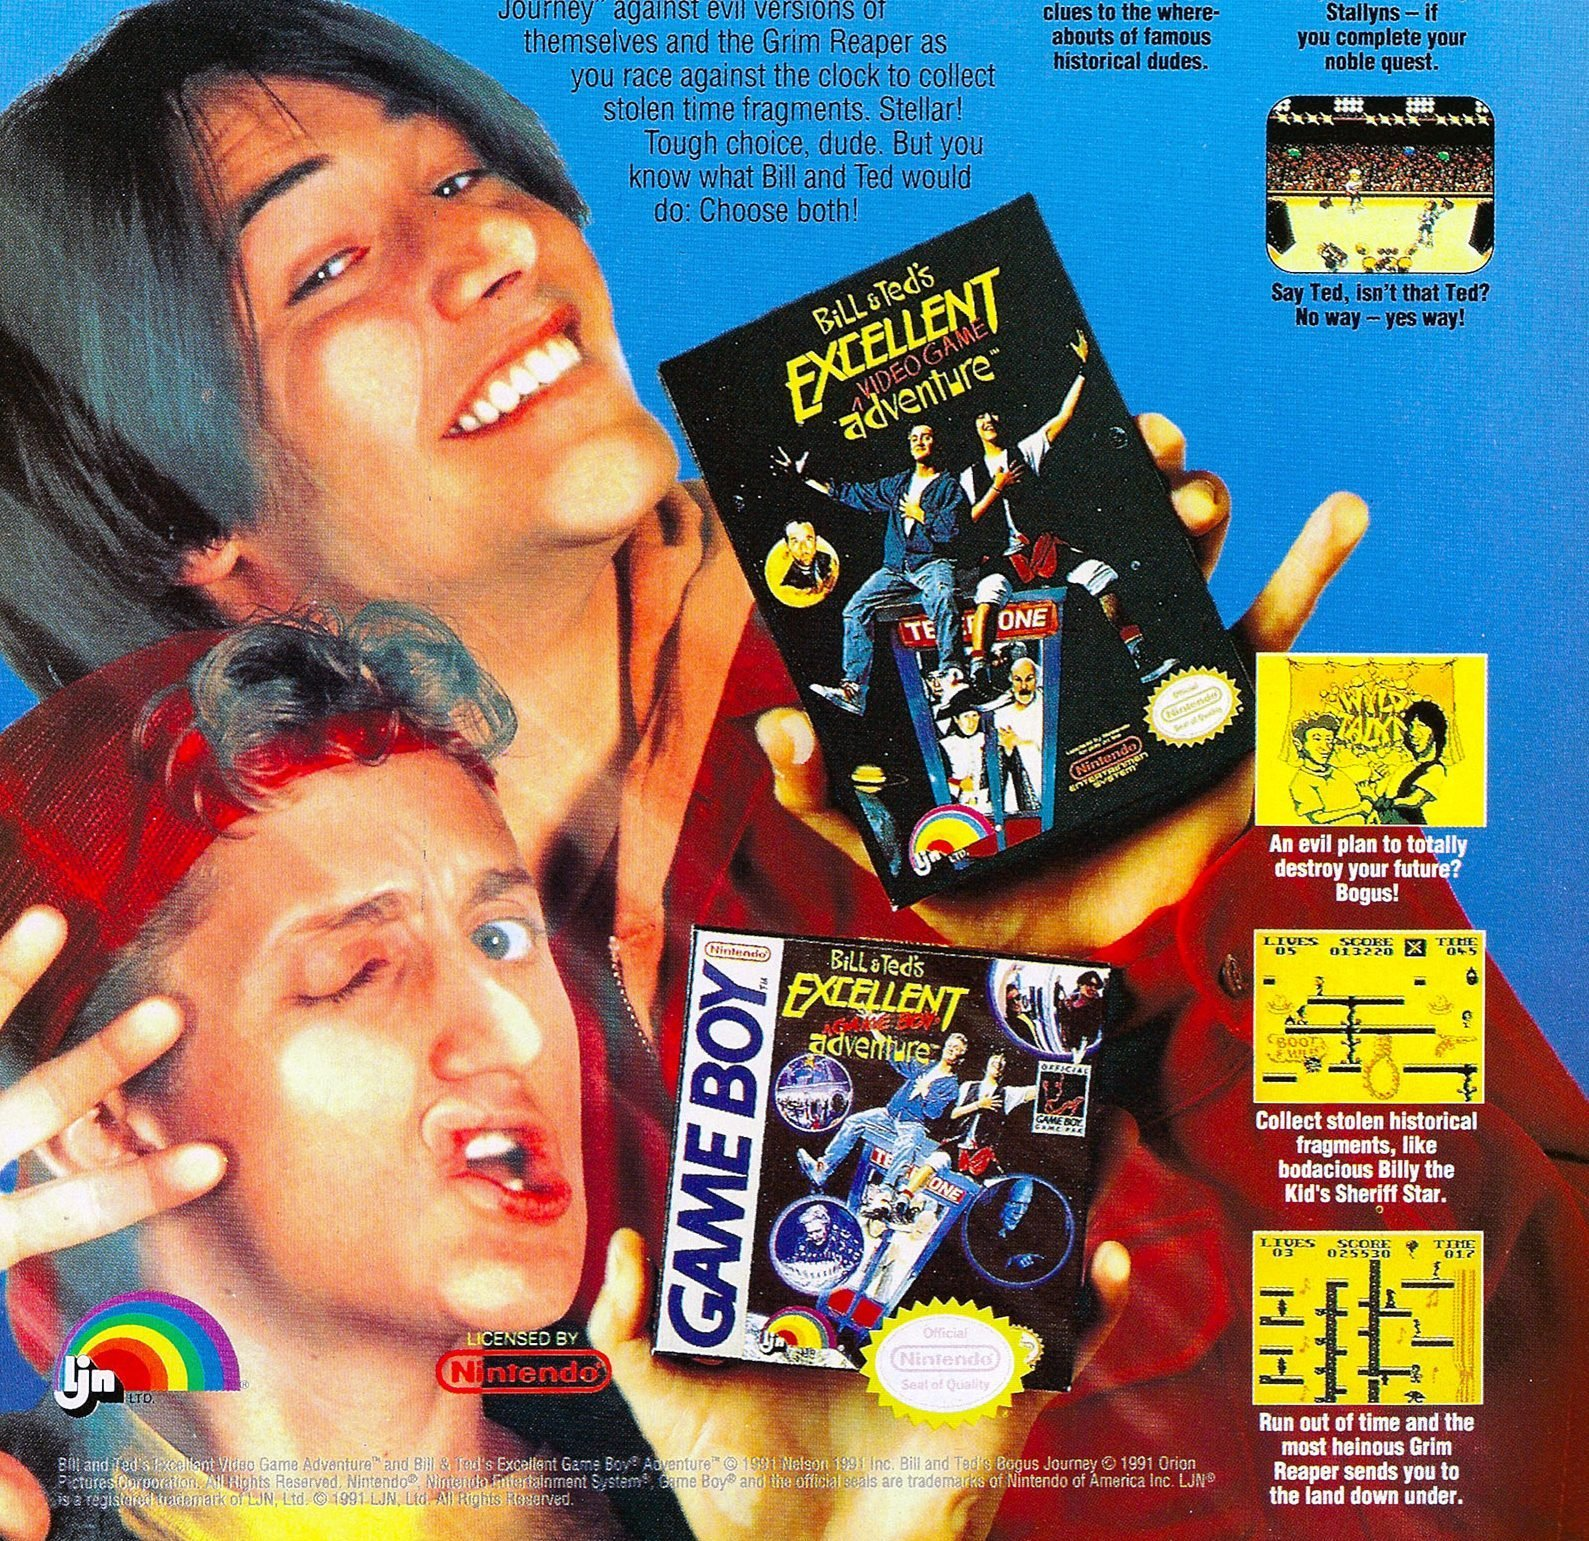 Bill and Teds Excellent Video Game Adventure and Game Boy Adventure e1616514412361 25 Totally Non-Heinous Facts About Bill & Ted's Excellent Adventure!